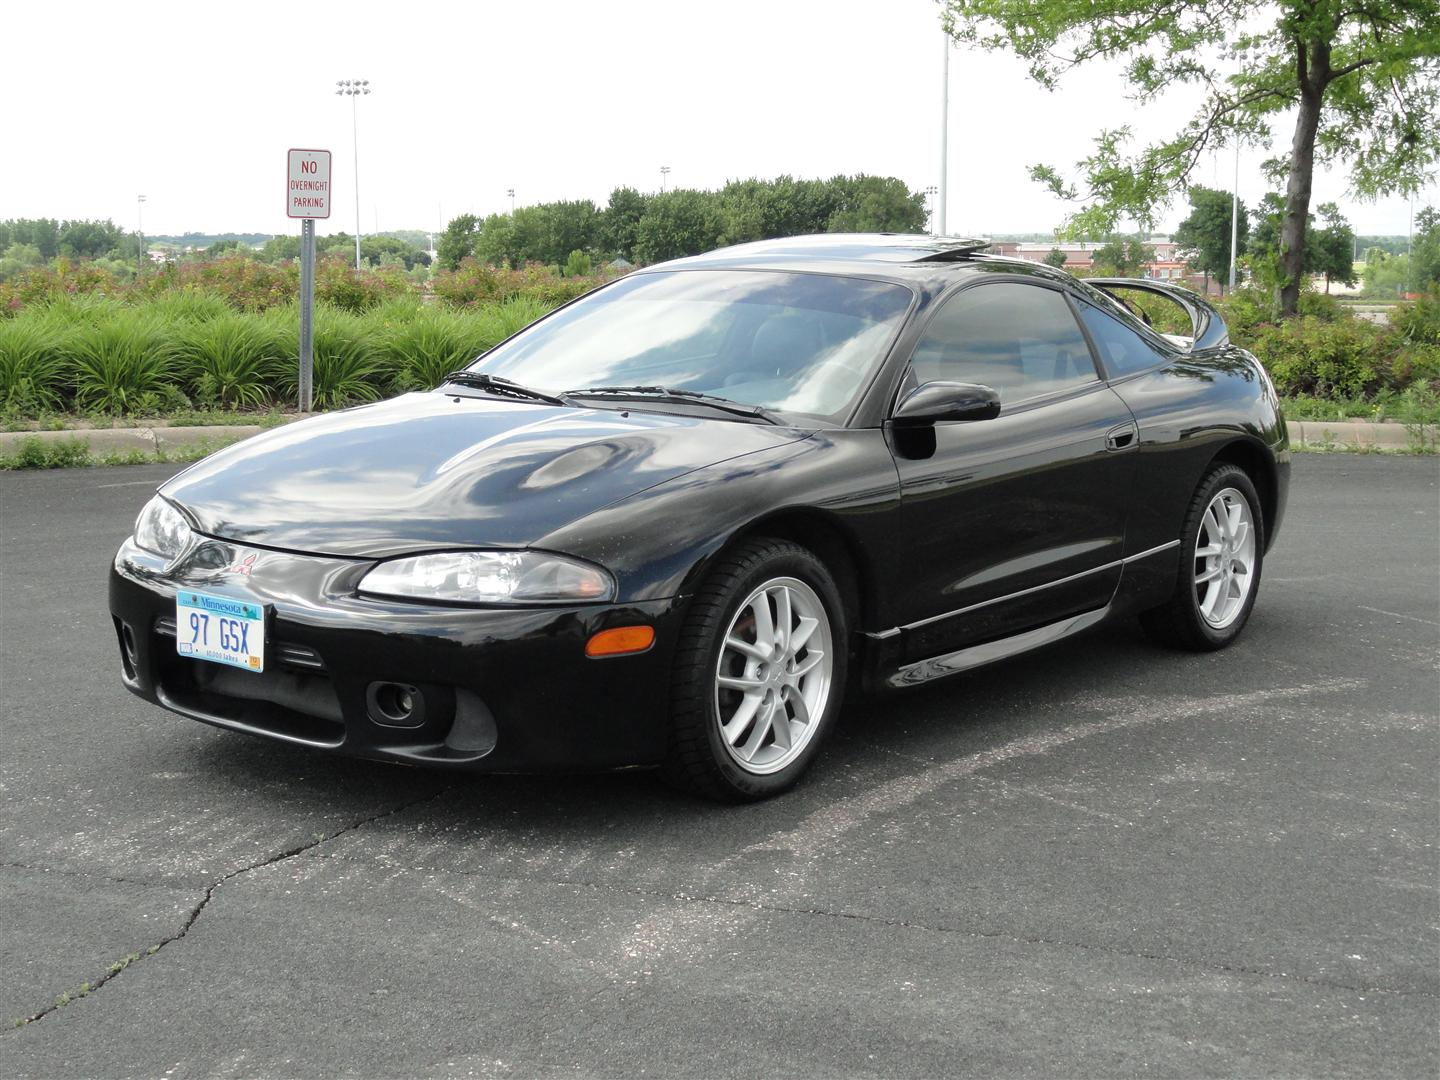 1997 mitsubishi eclipse gsx for sale mitsustyle. Black Bedroom Furniture Sets. Home Design Ideas